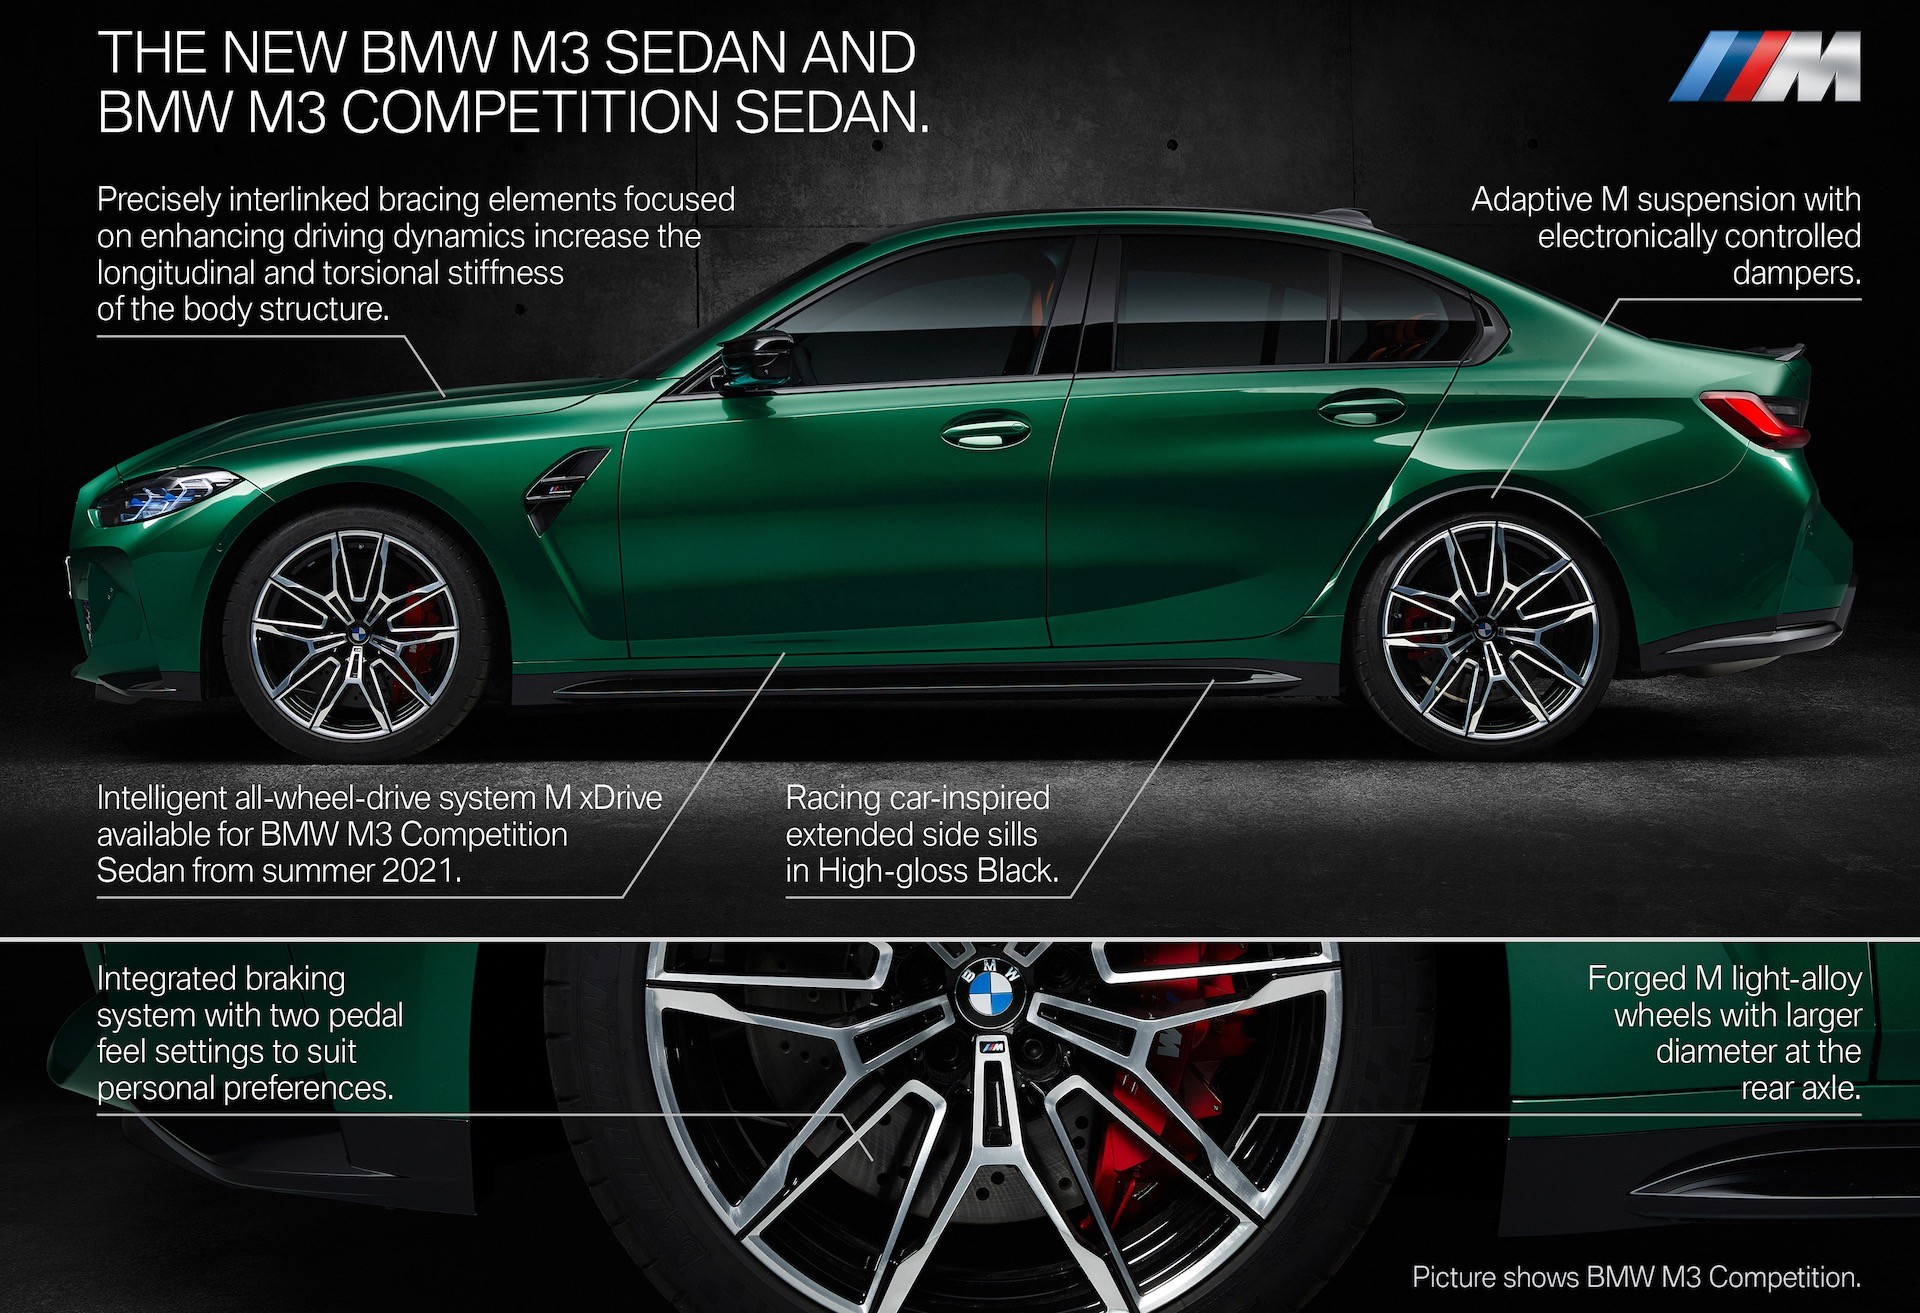 All New Bmw M3 And M4 Go Official In Australia Q1 2021 Performancedrive